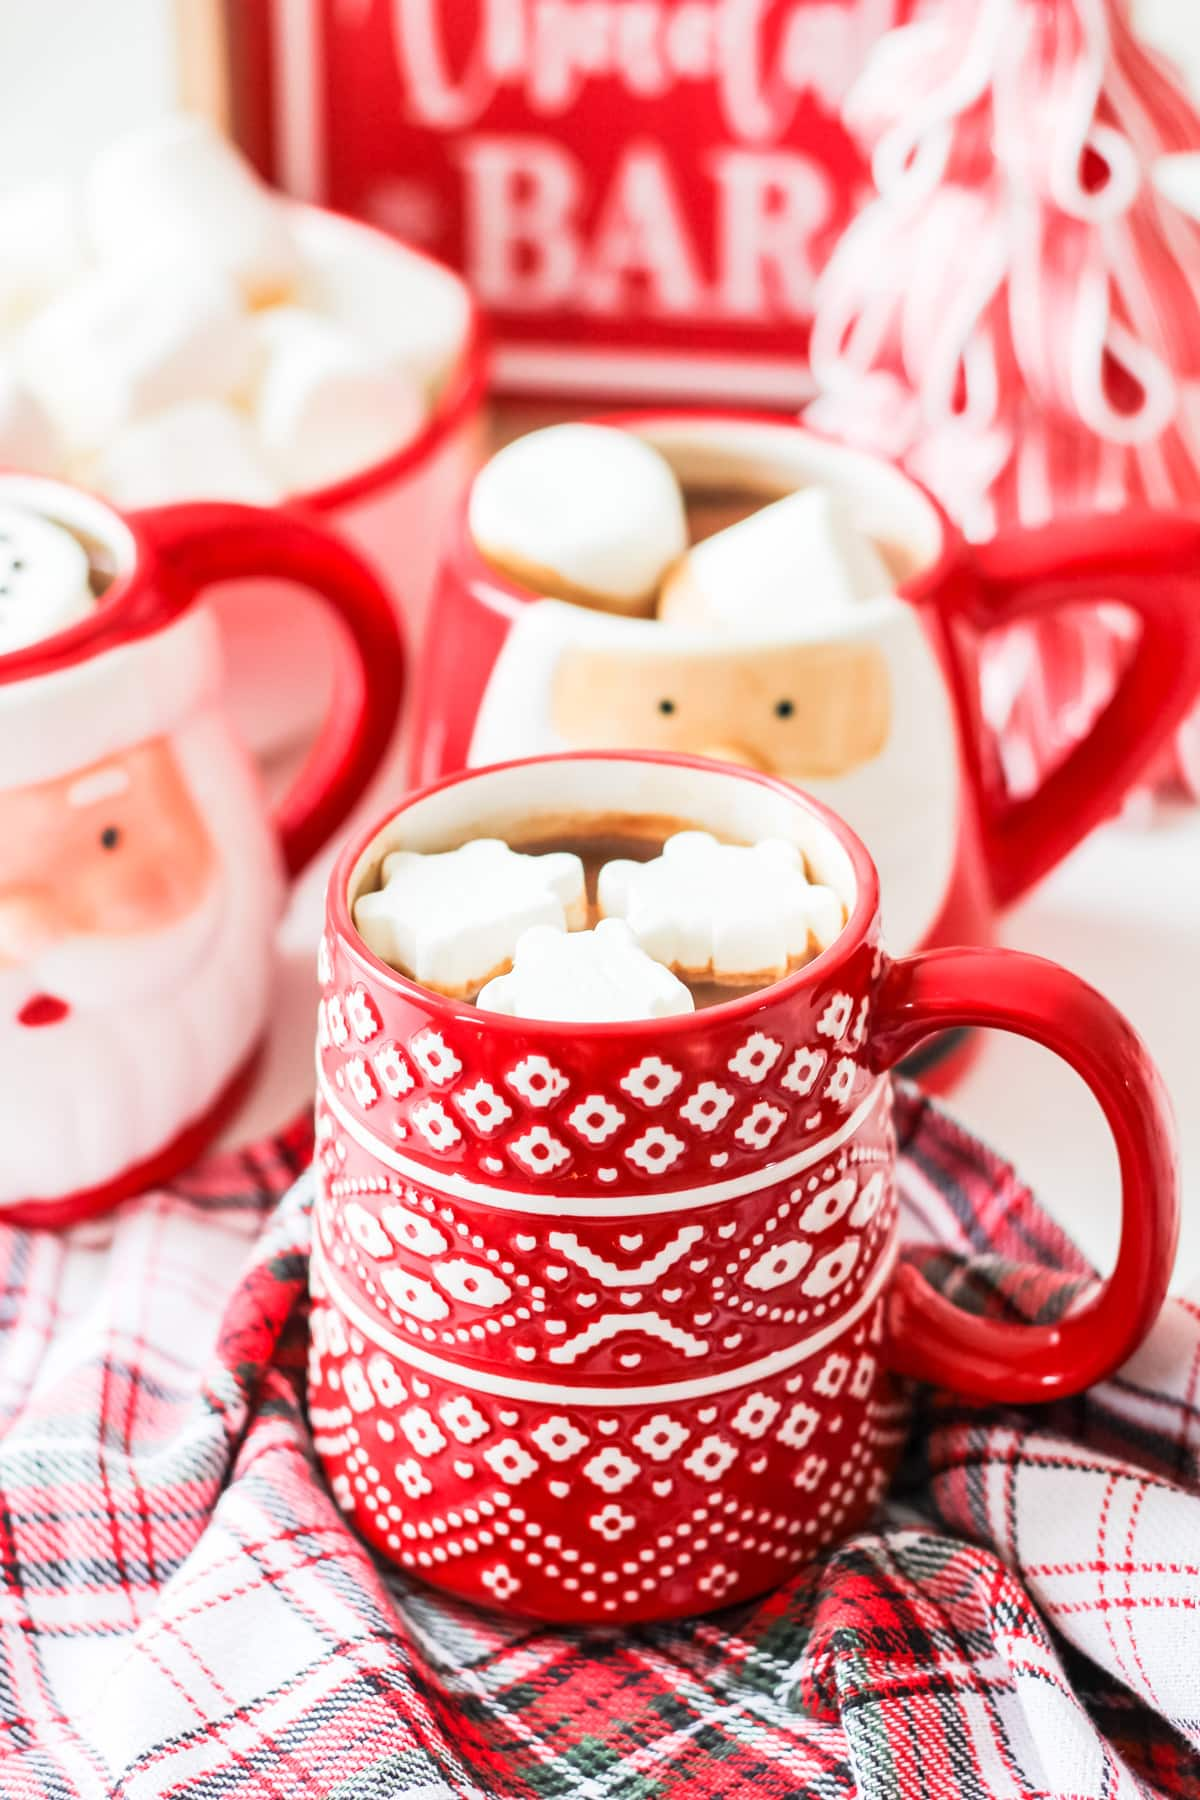 A red and white mug of hot chocolate and marshmallows